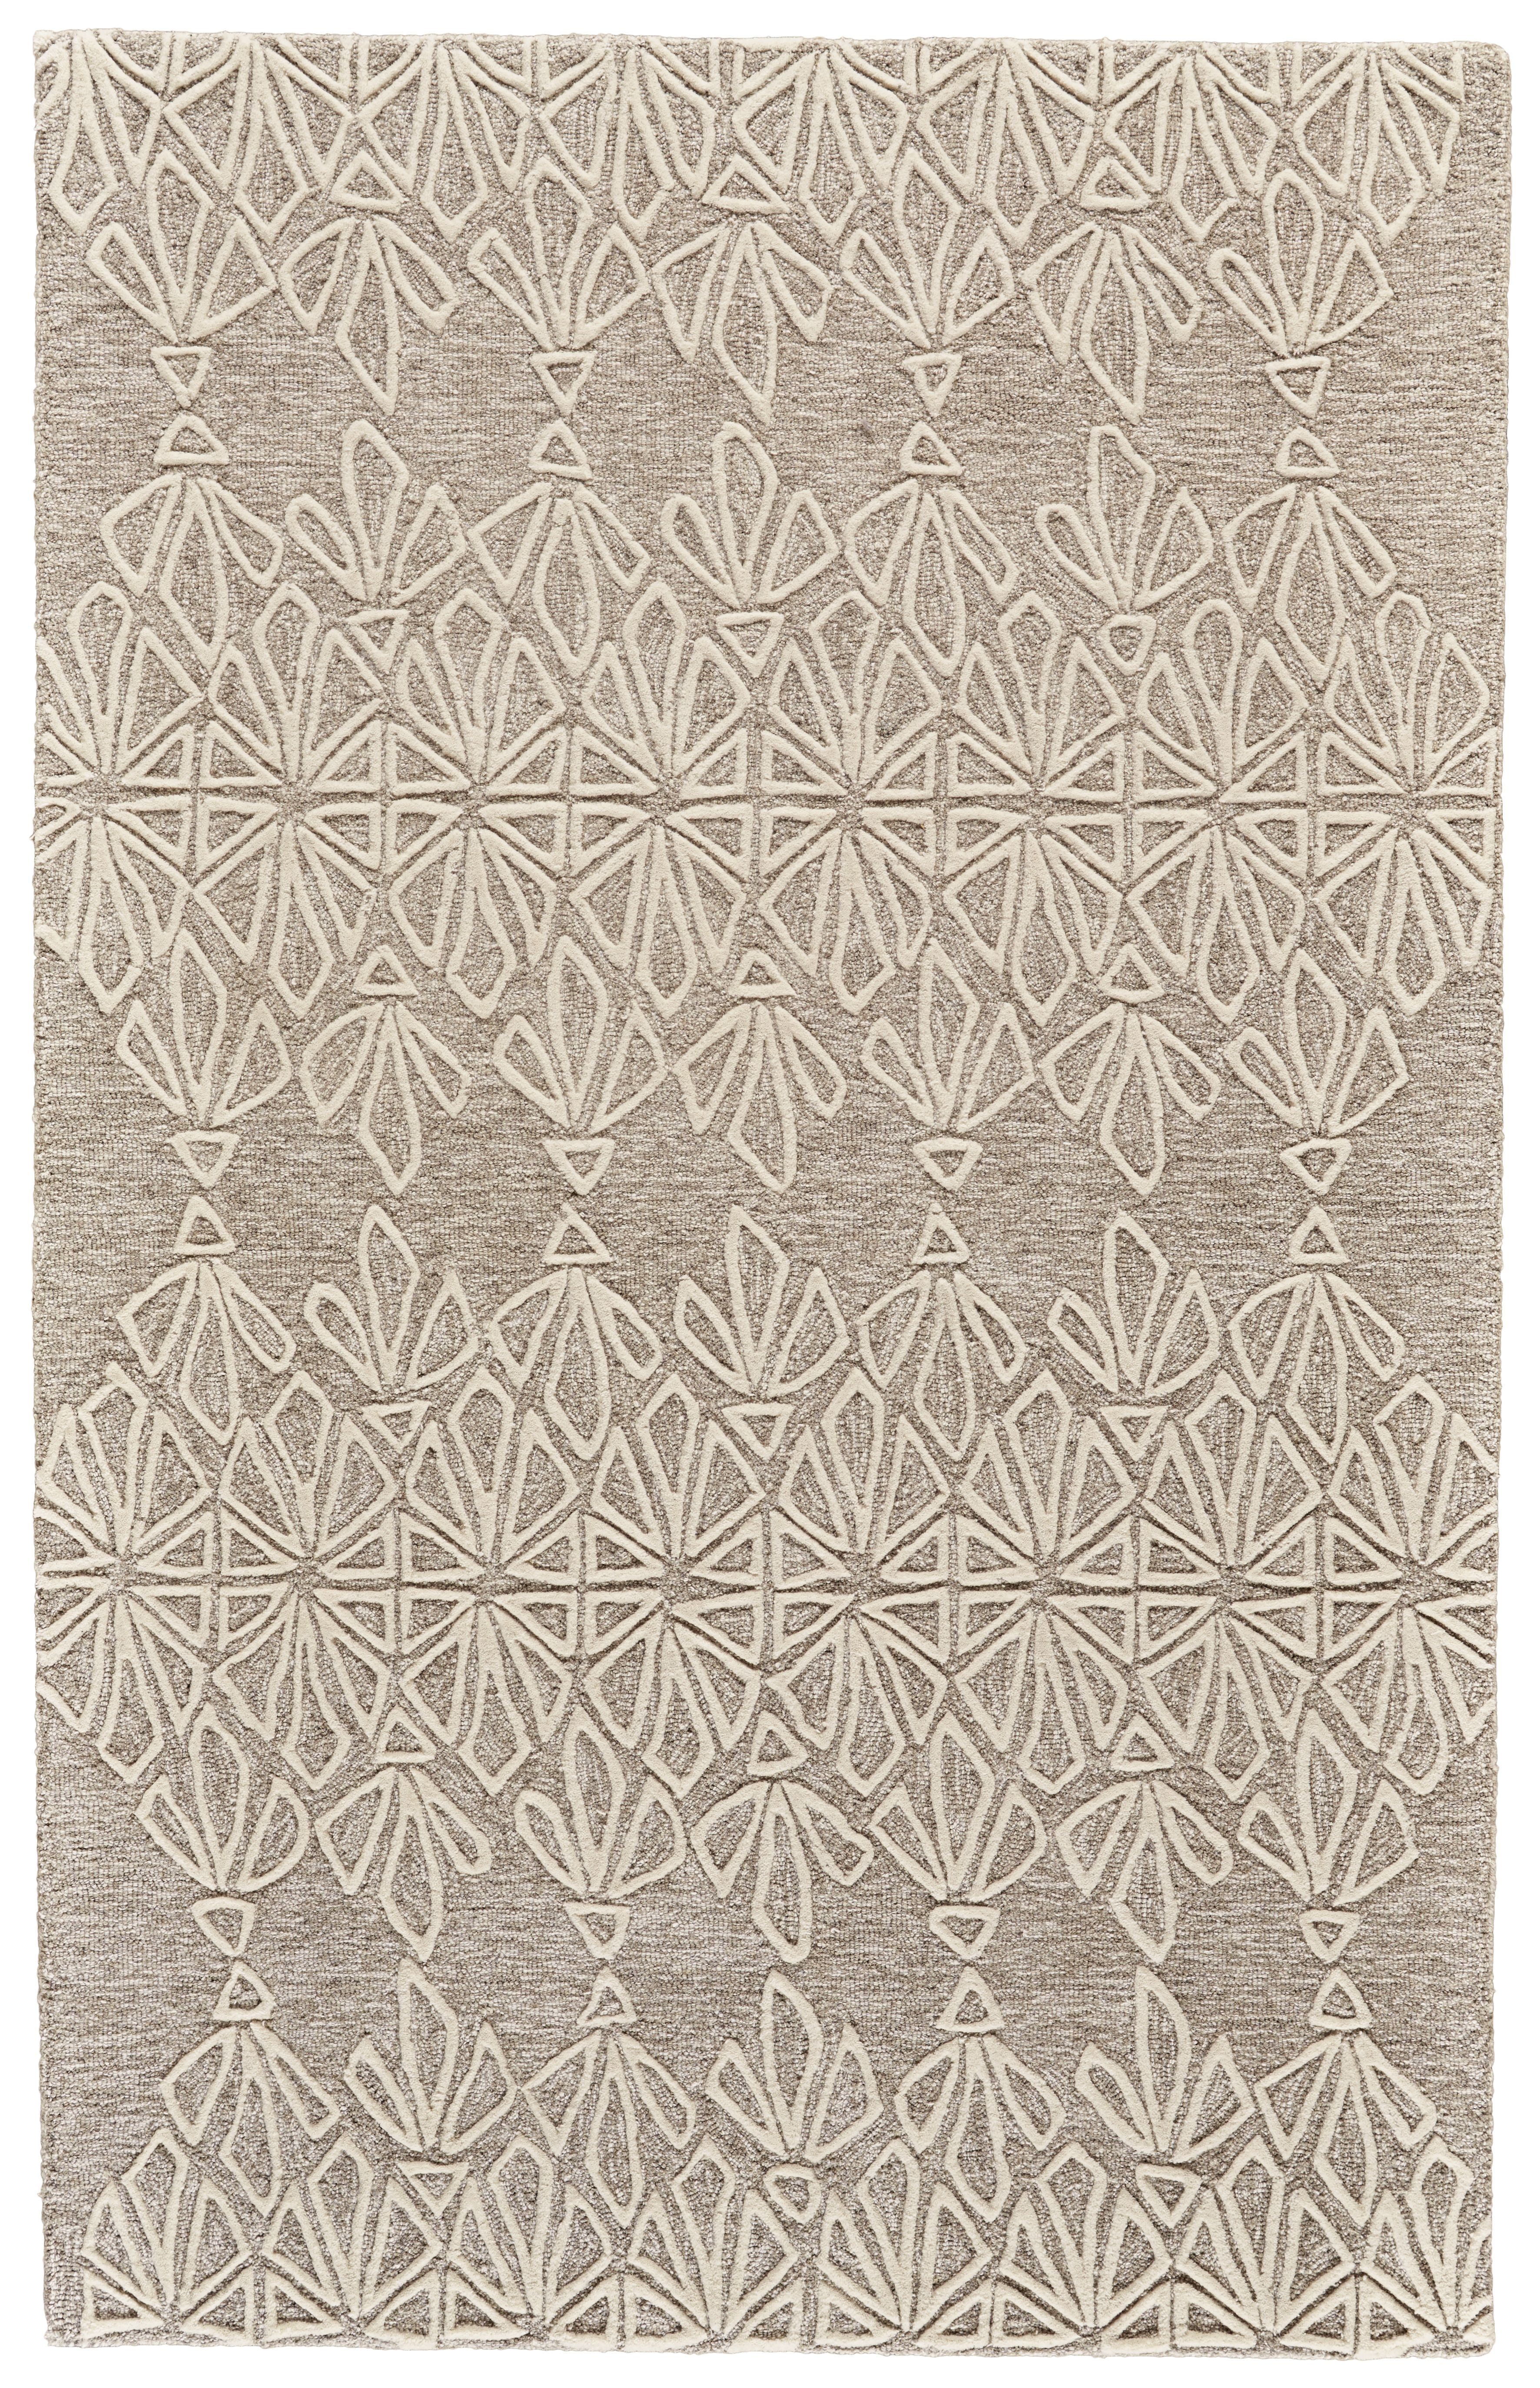 Rug Tribal Floral Ivory Taupe Grey 150 In 2020 Area Rugs